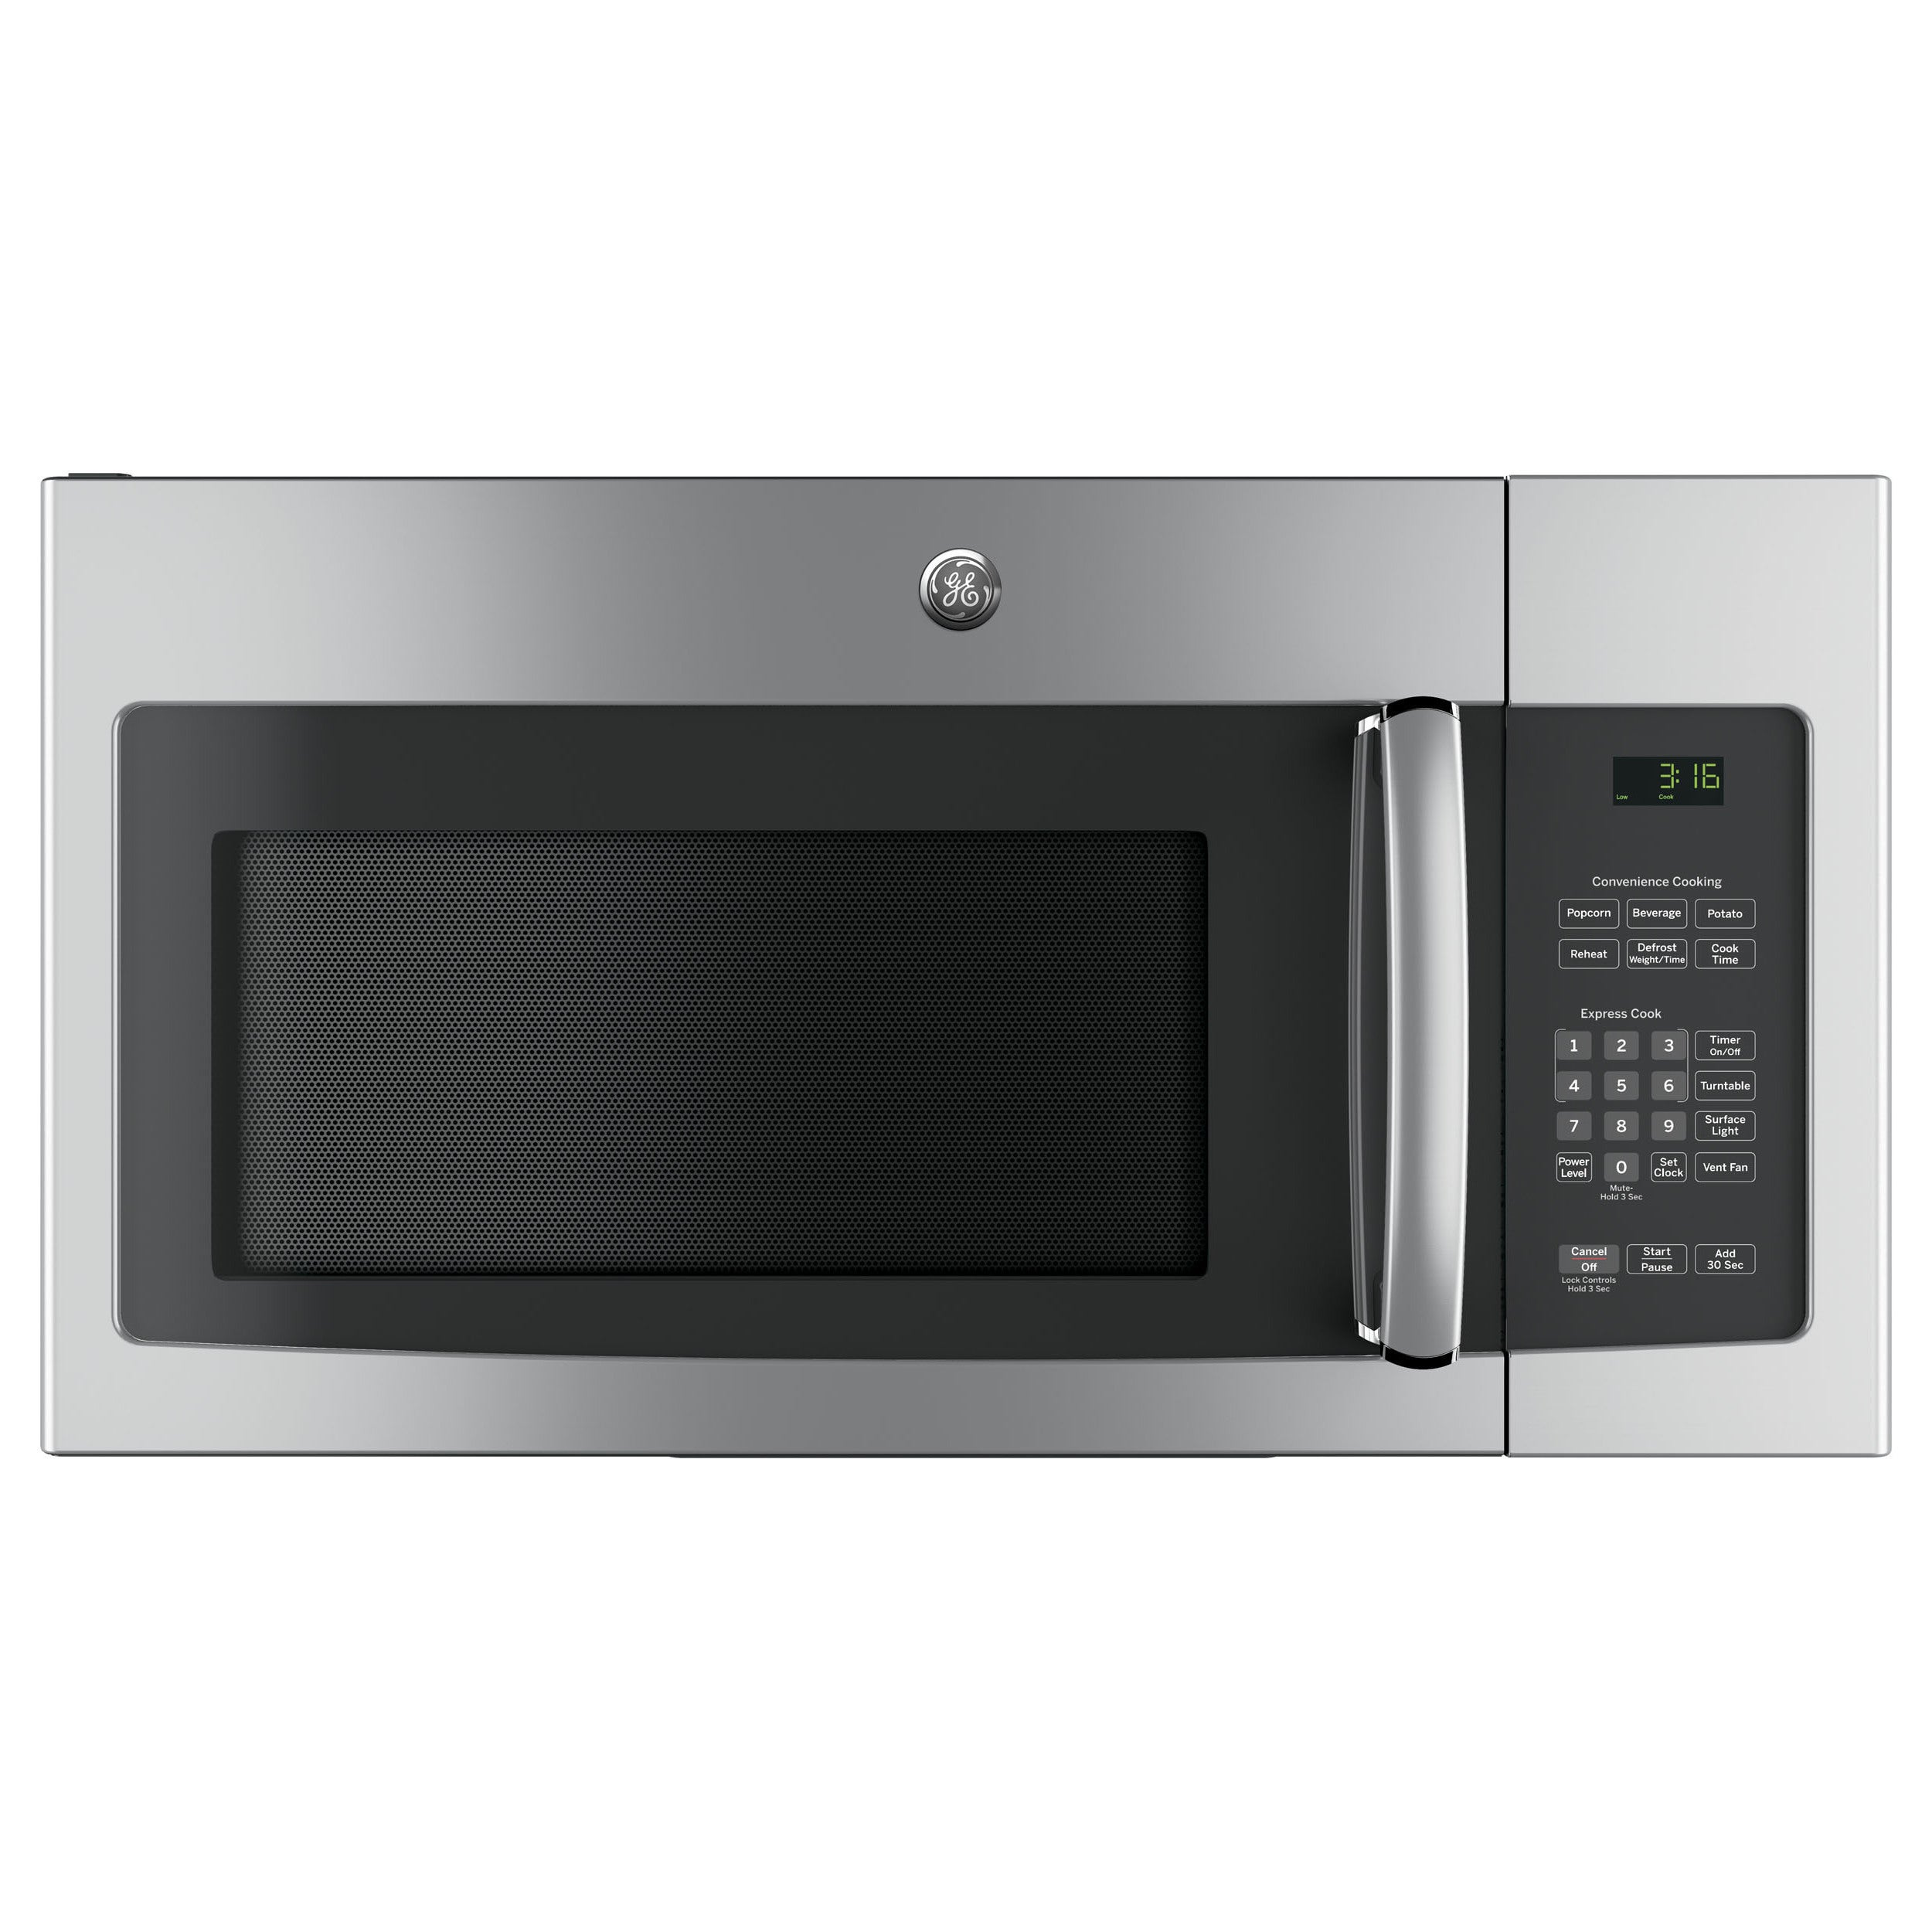 Ge 1 6 Cubic Feet Over The Range Microwave Oven With Recirculating Venting